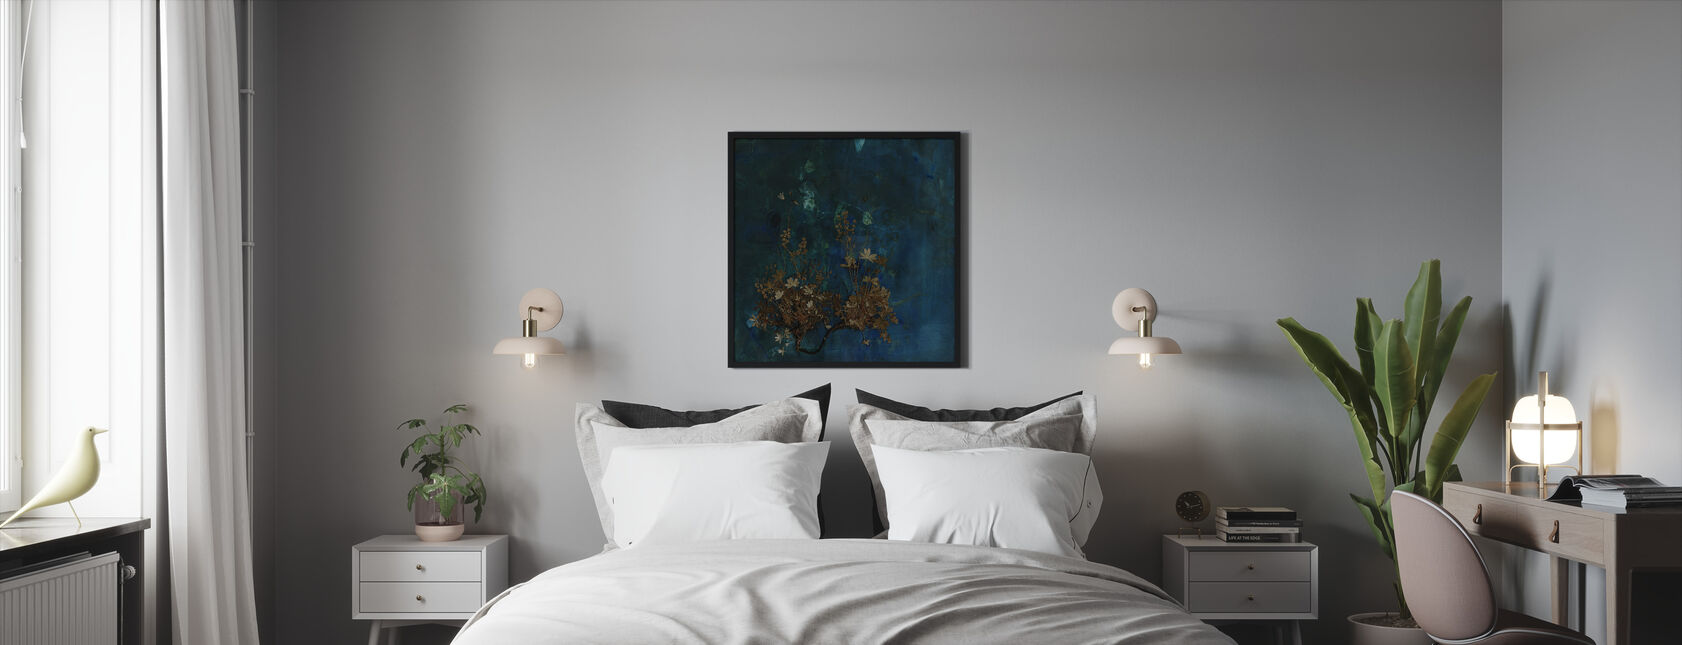 Plateau - Framed print - Bedroom